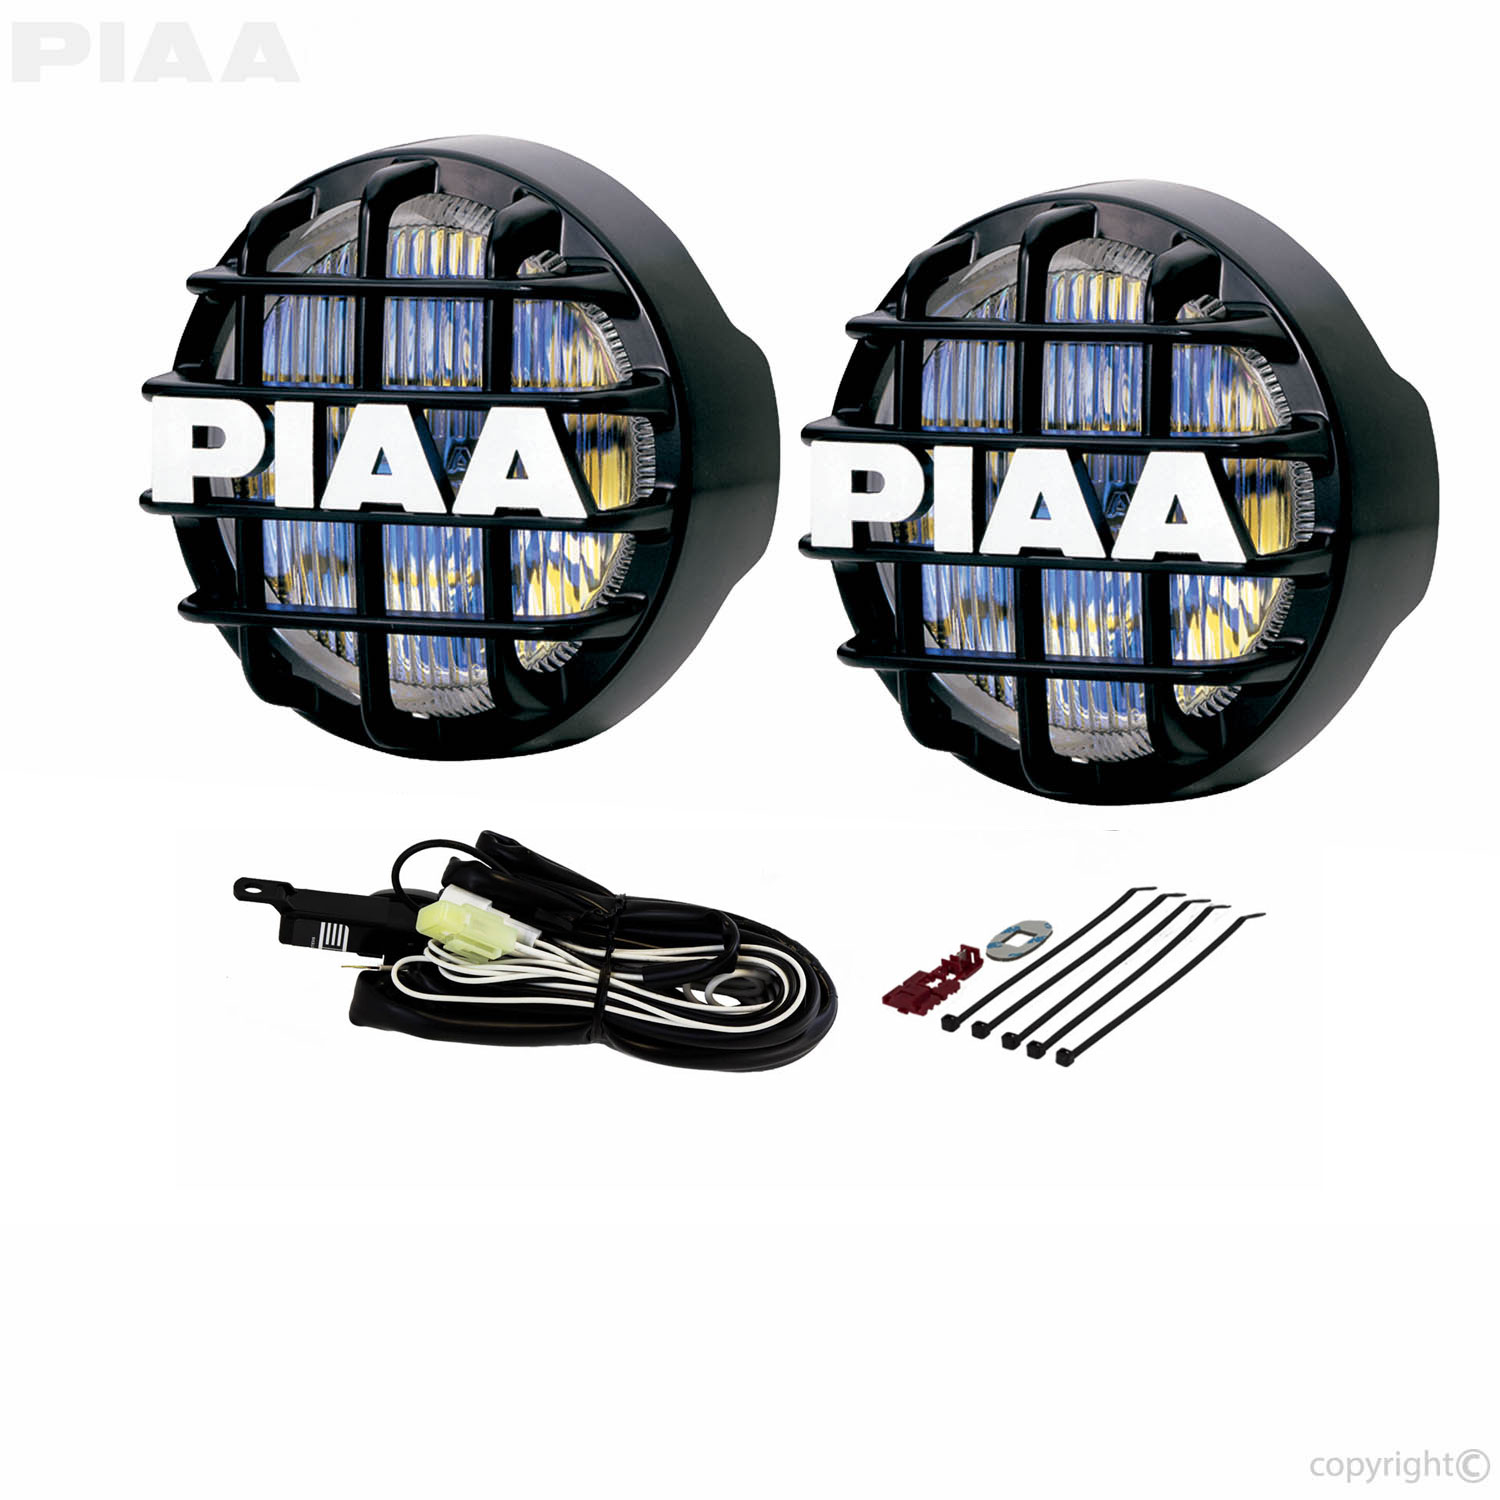 piaa 05161 510 contents hr?bw=1000&w=1000&bh=1000&h=1000 piaa 510 ion yellow fog halogen lamp kit 5161 piaa fog light wiring diagram at crackthecode.co